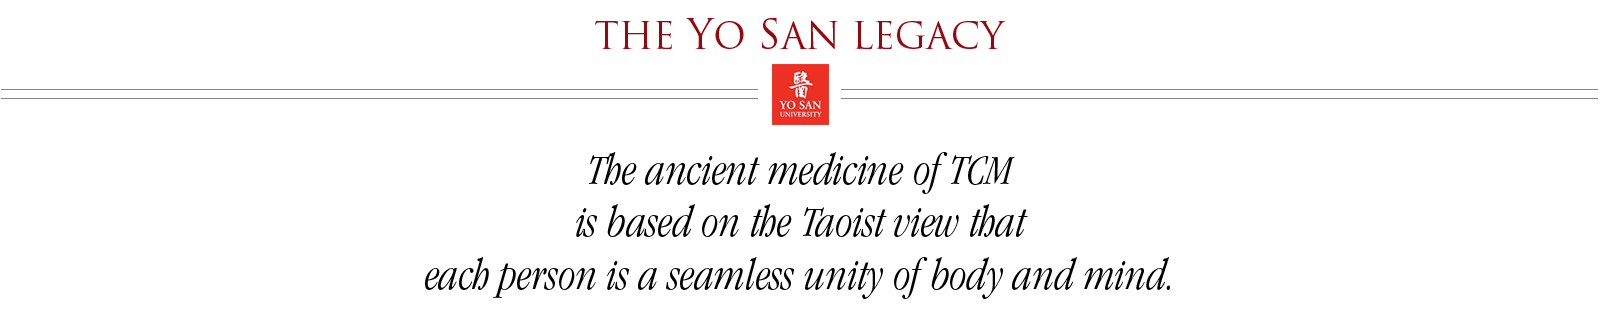 The Yo San Legacy - The ancient medicine of TCM is based on the Taoist view that each person is a seamless unity of body and mind.